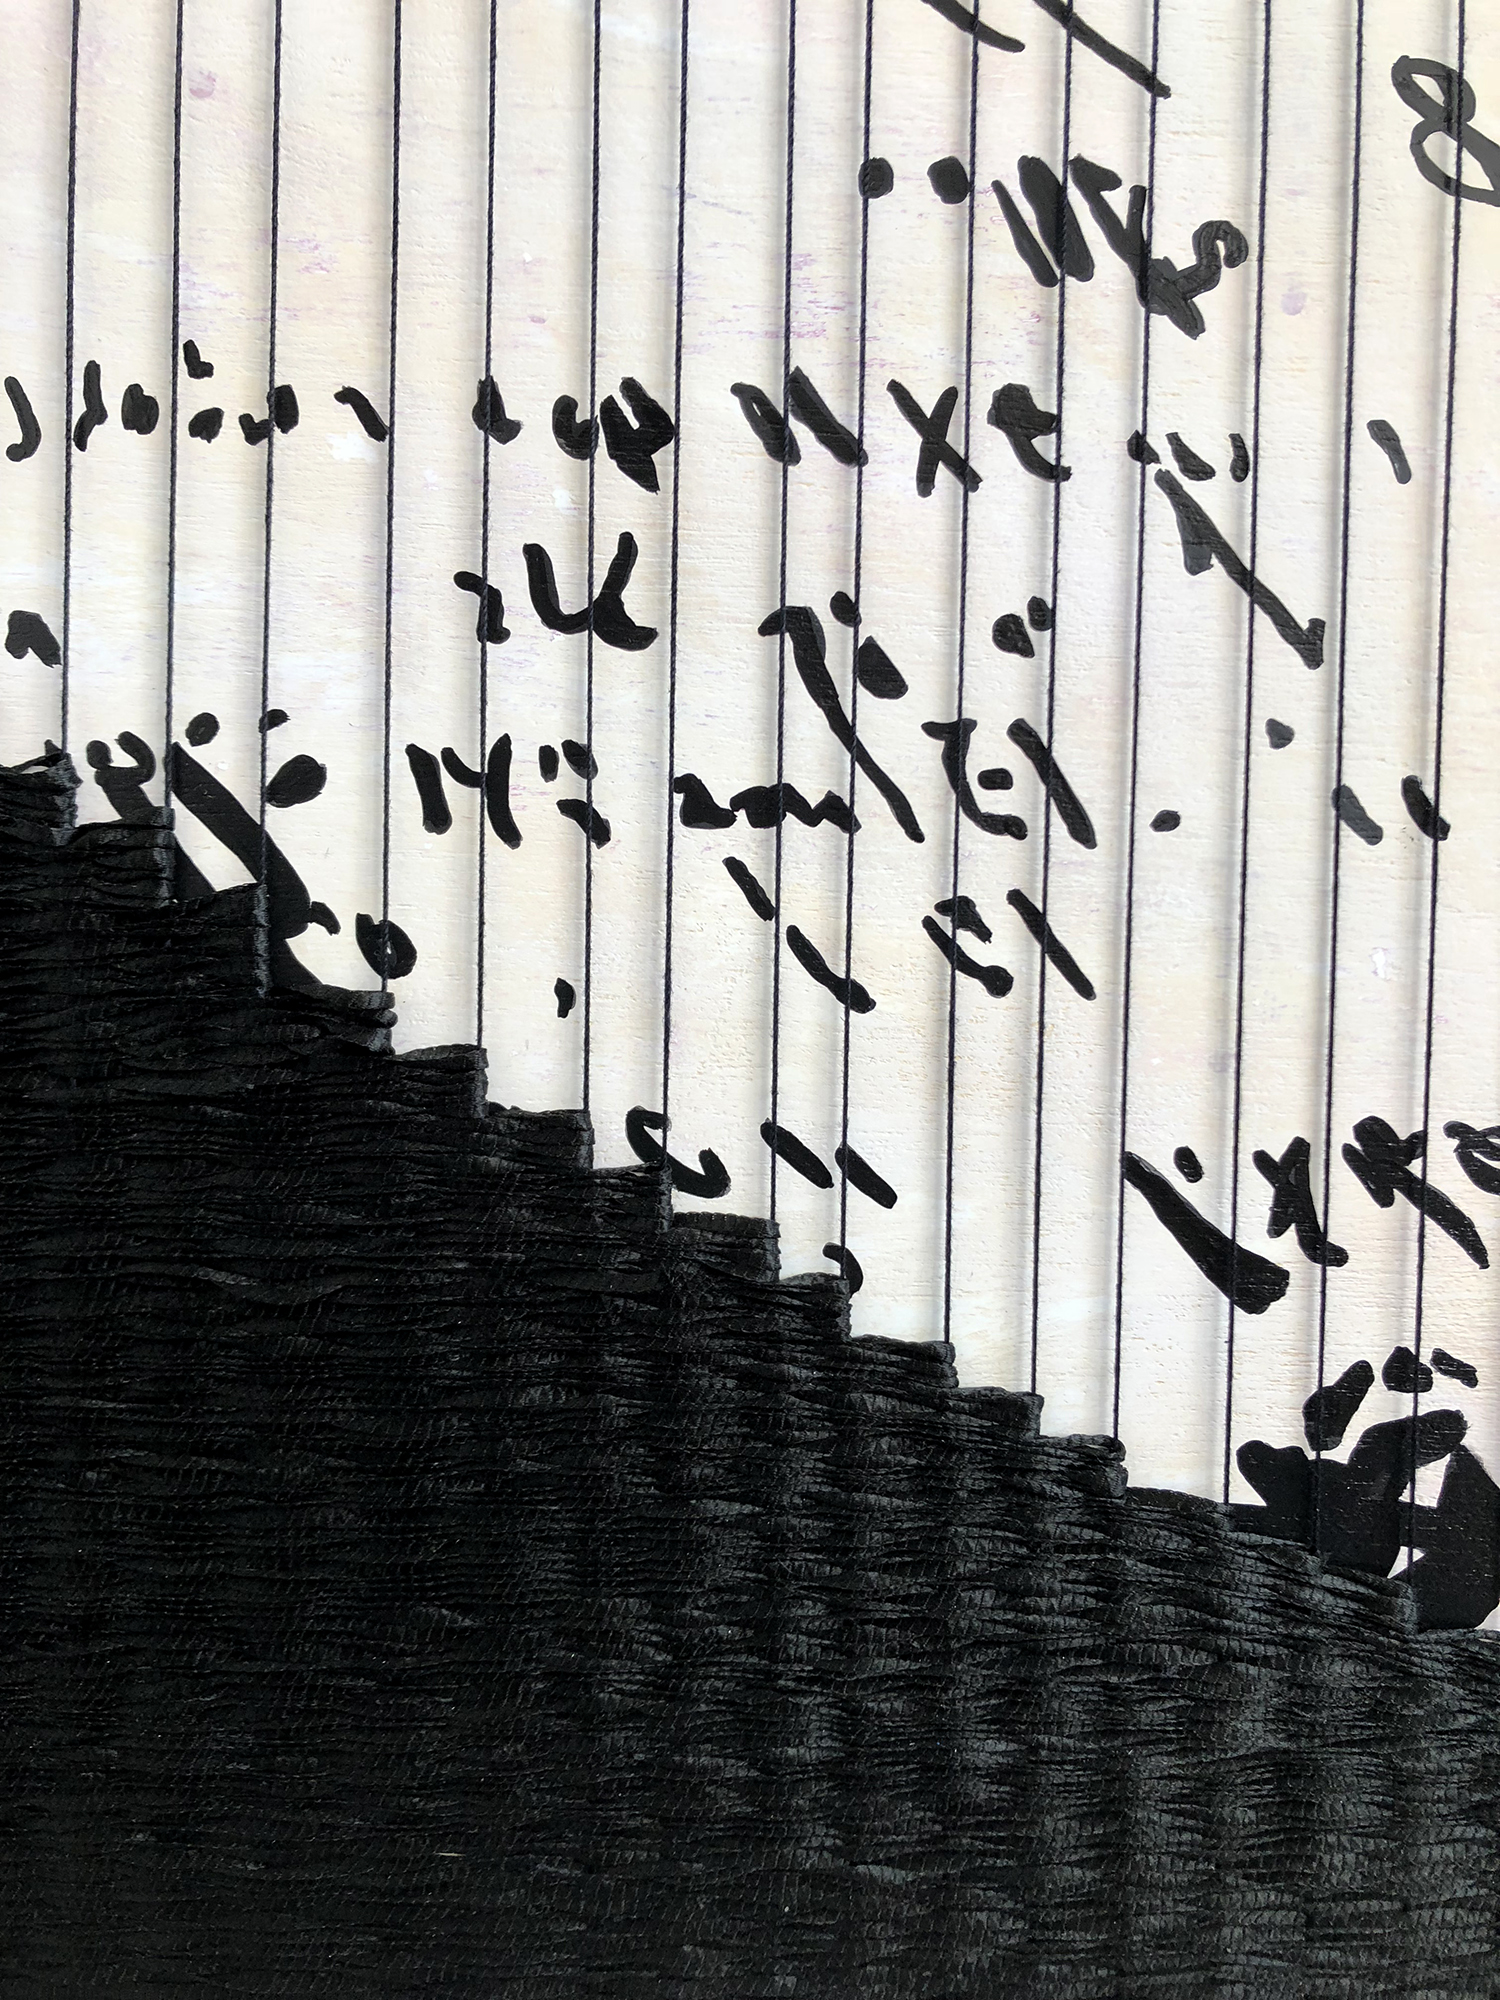 Sara Jones, Difficult to Read Because of Bleed-through, 2018 (detail)